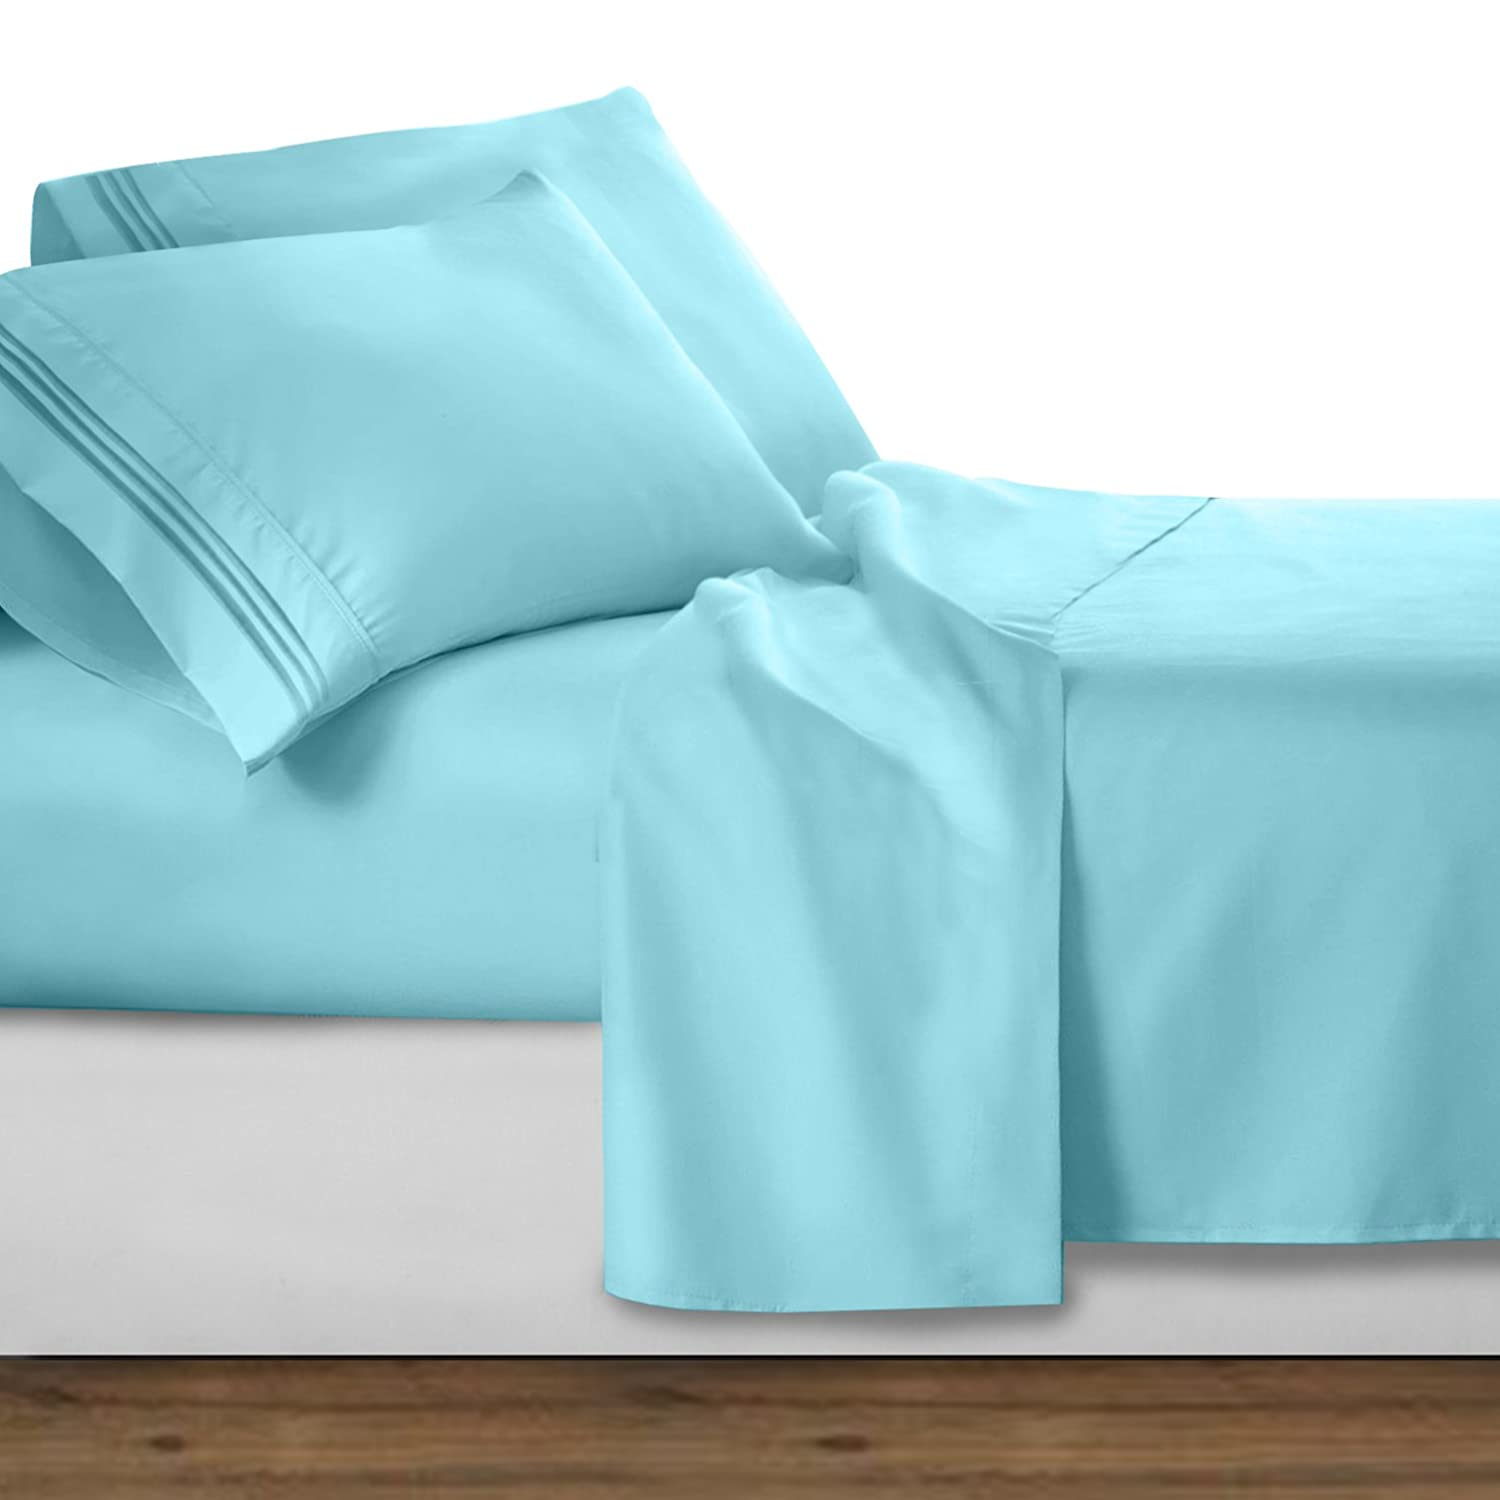 Clara Clark 1800 Premier Series 4pc Bed Sheet Set - King, Light Blue Aqua